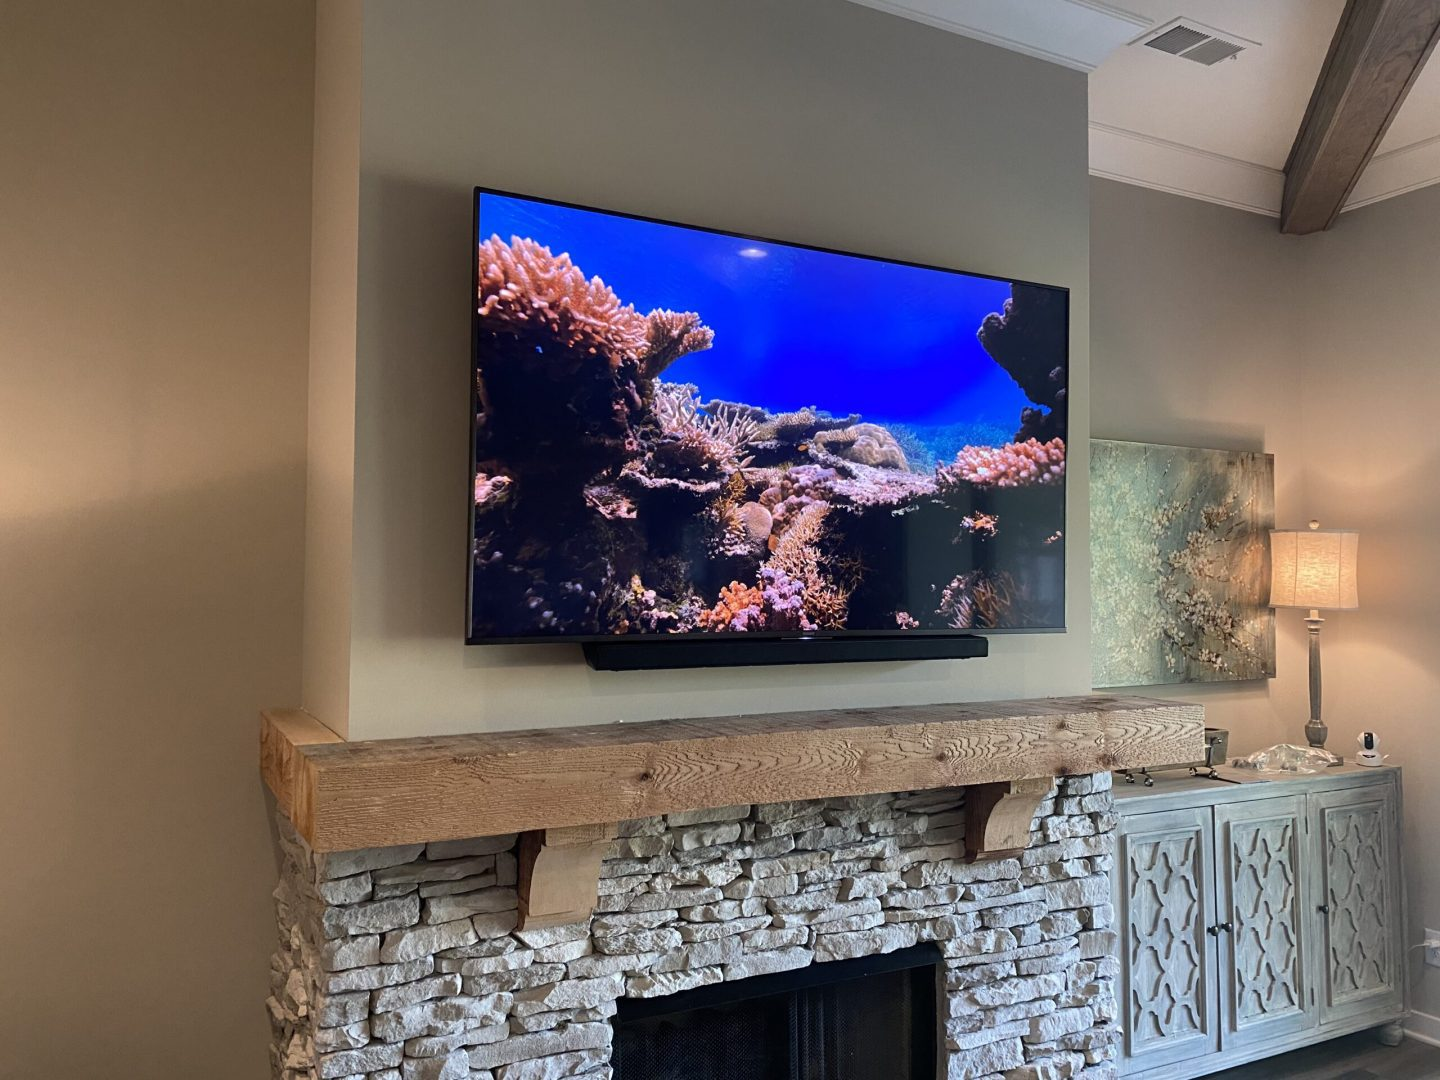 TV install with Surround Sound system for luxury living